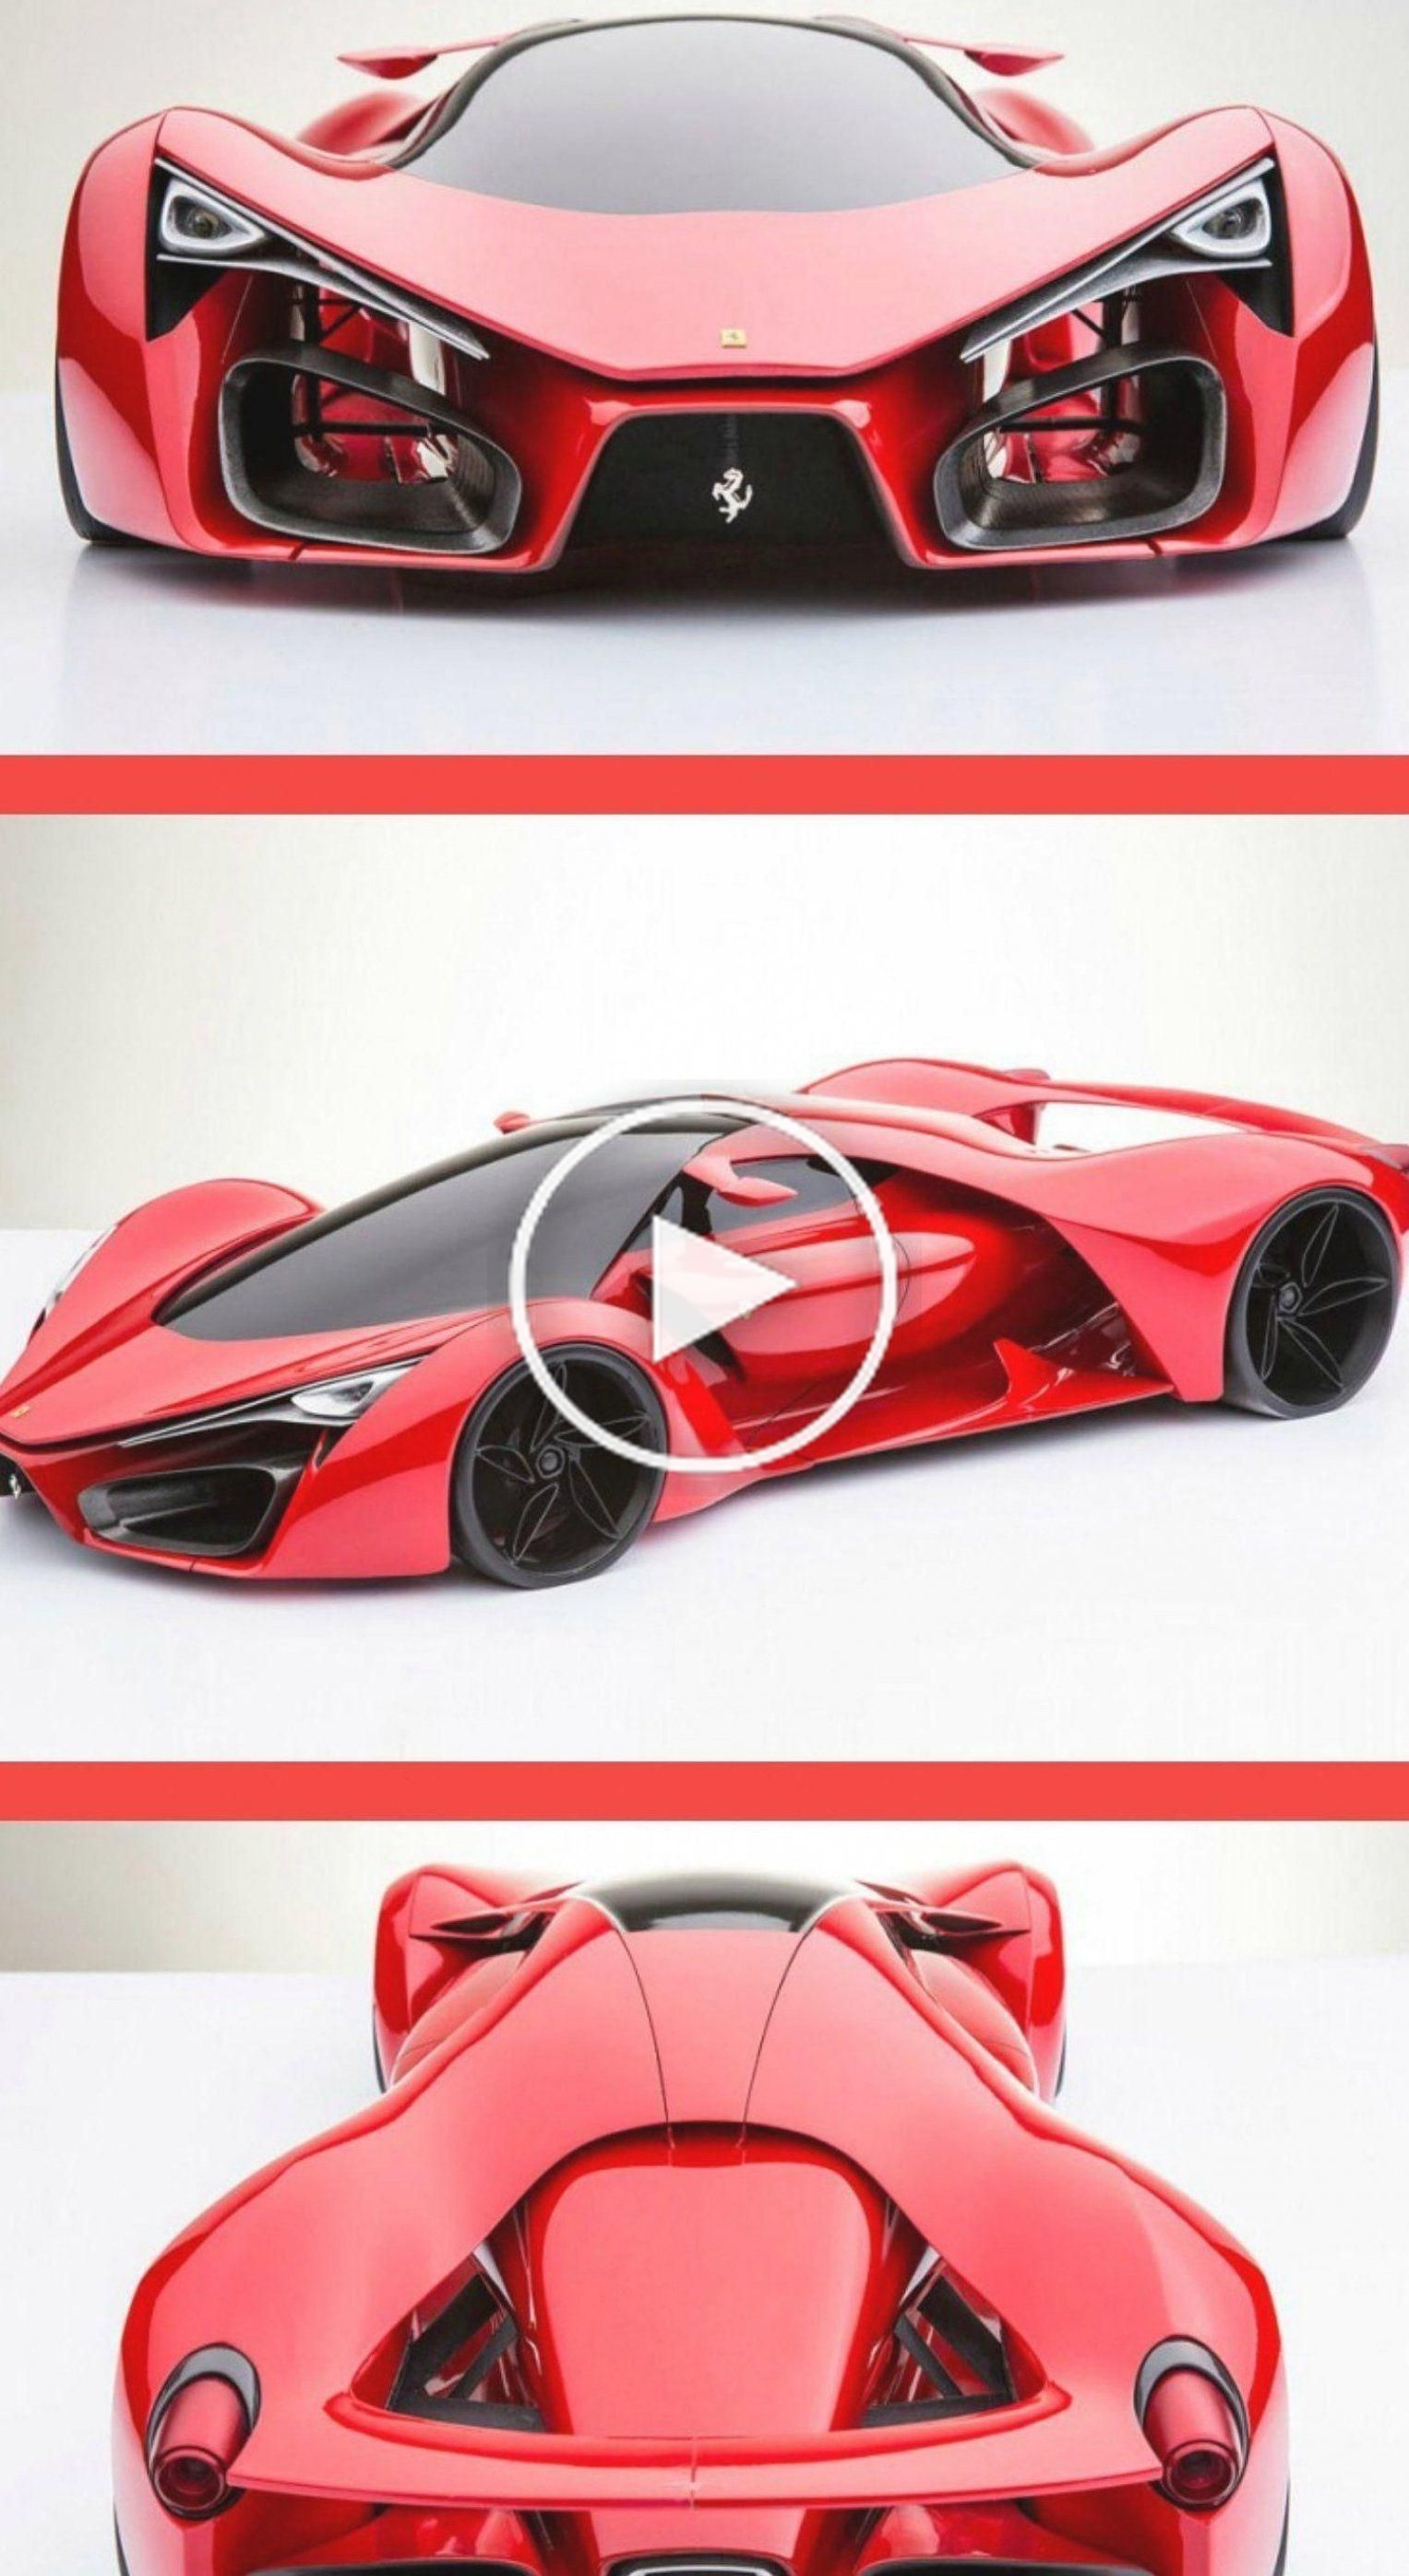 Super Cars Most Expensive Cars Expensive Cars Expensive Cars Expensive Luxury Cars In 2020 Super Cars Expensive Cars Cars